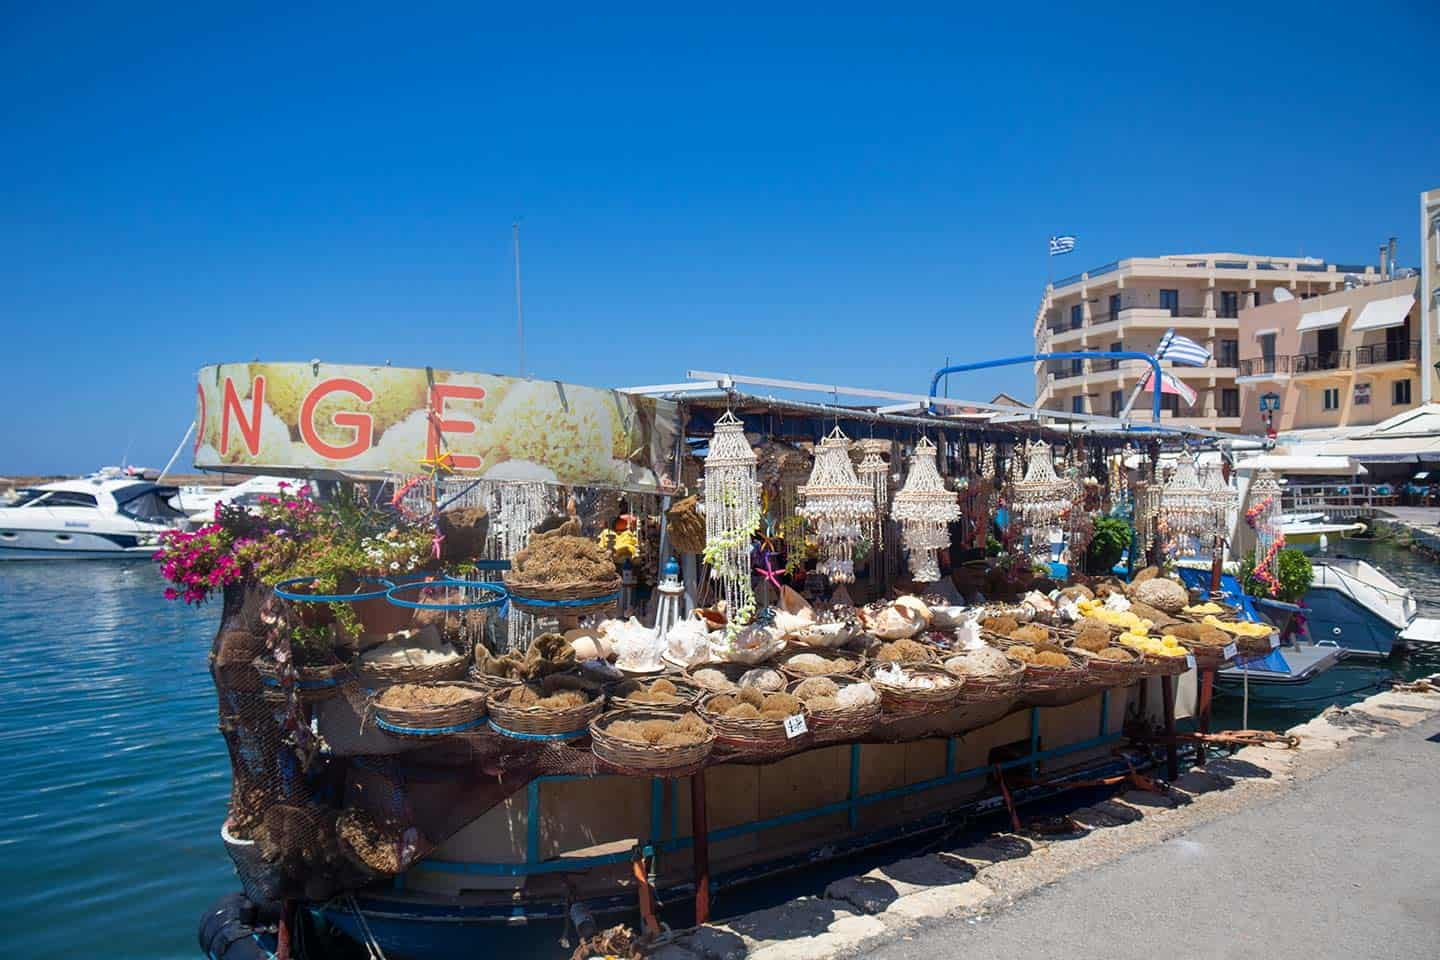 Image of a boat stall selling sea sponges in Chania harbour